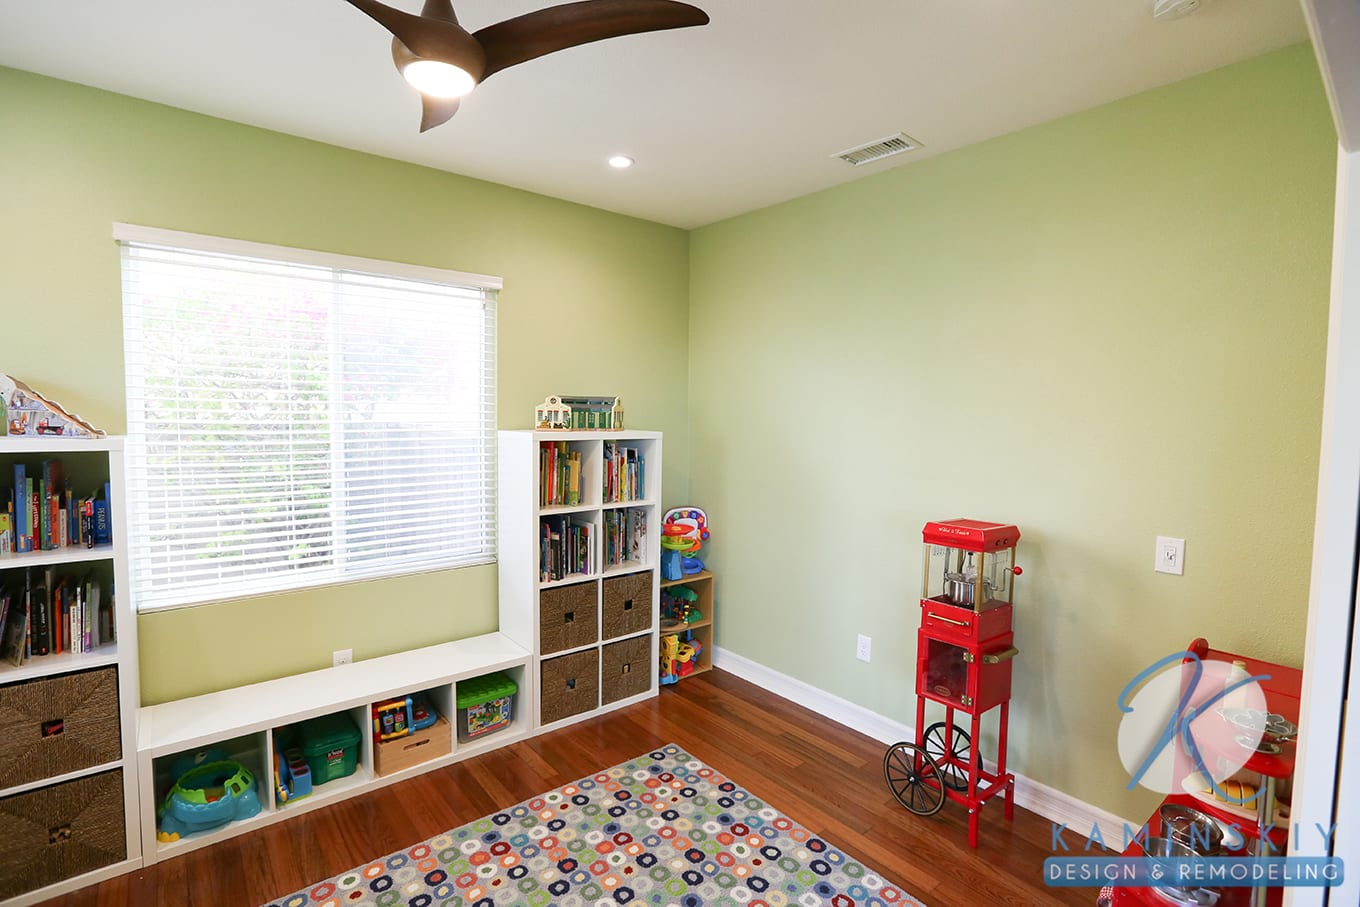 Room Addition Company In San Diego